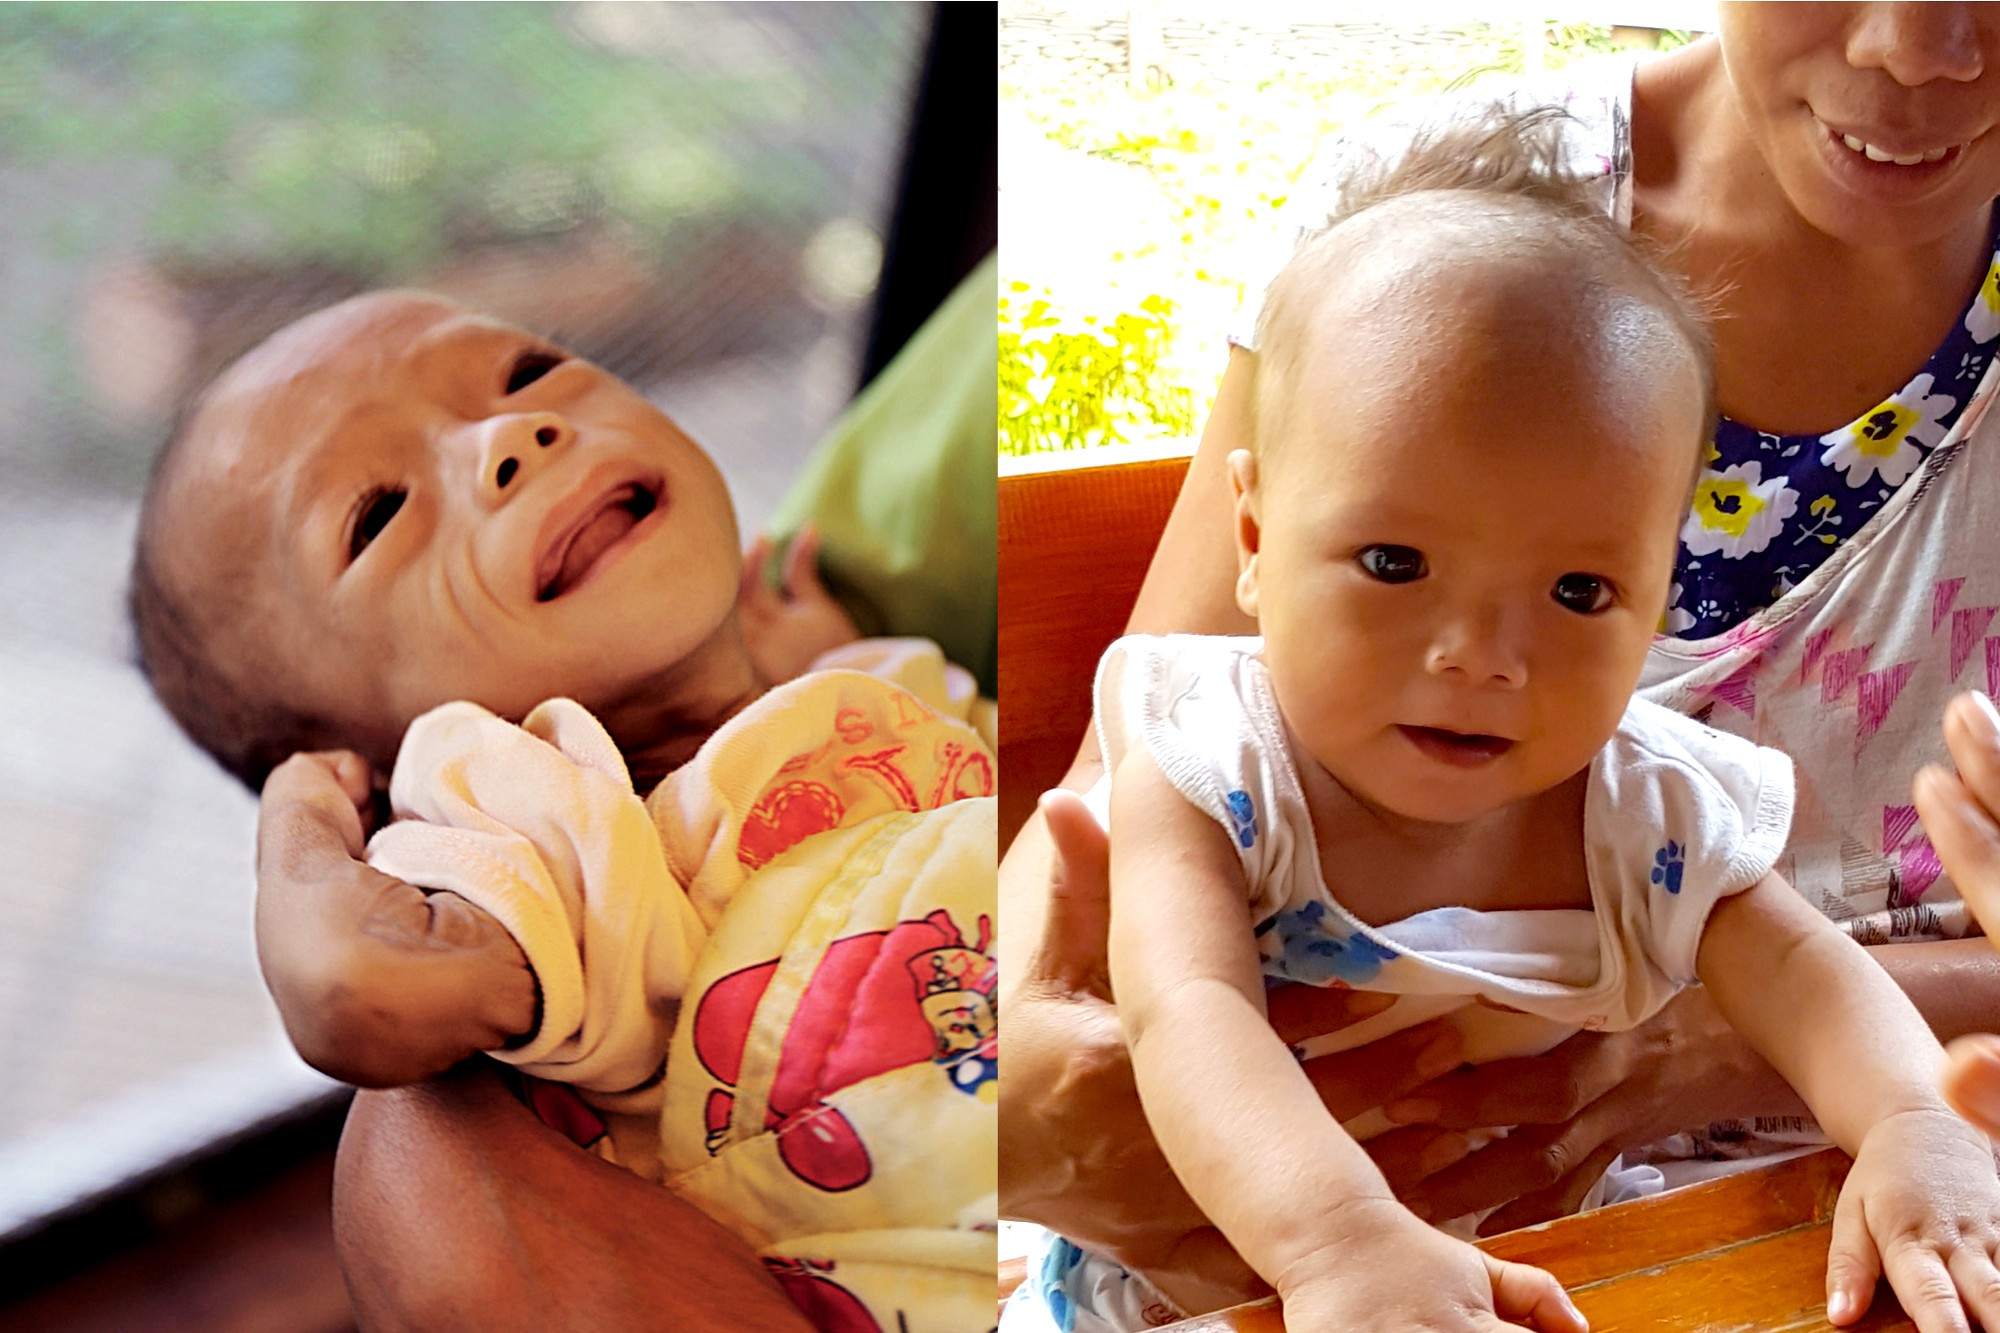 Joemar Bacaltos' weight increased from 3.3 kg in August 2016 (left) to 6 kg in December 2016 (right) after beginning treatment for severe acute malnutrition.    Photo source: Lotta Sylwander, UNICEF Philippines Country Representative   ©UNICEF Philippines/2016